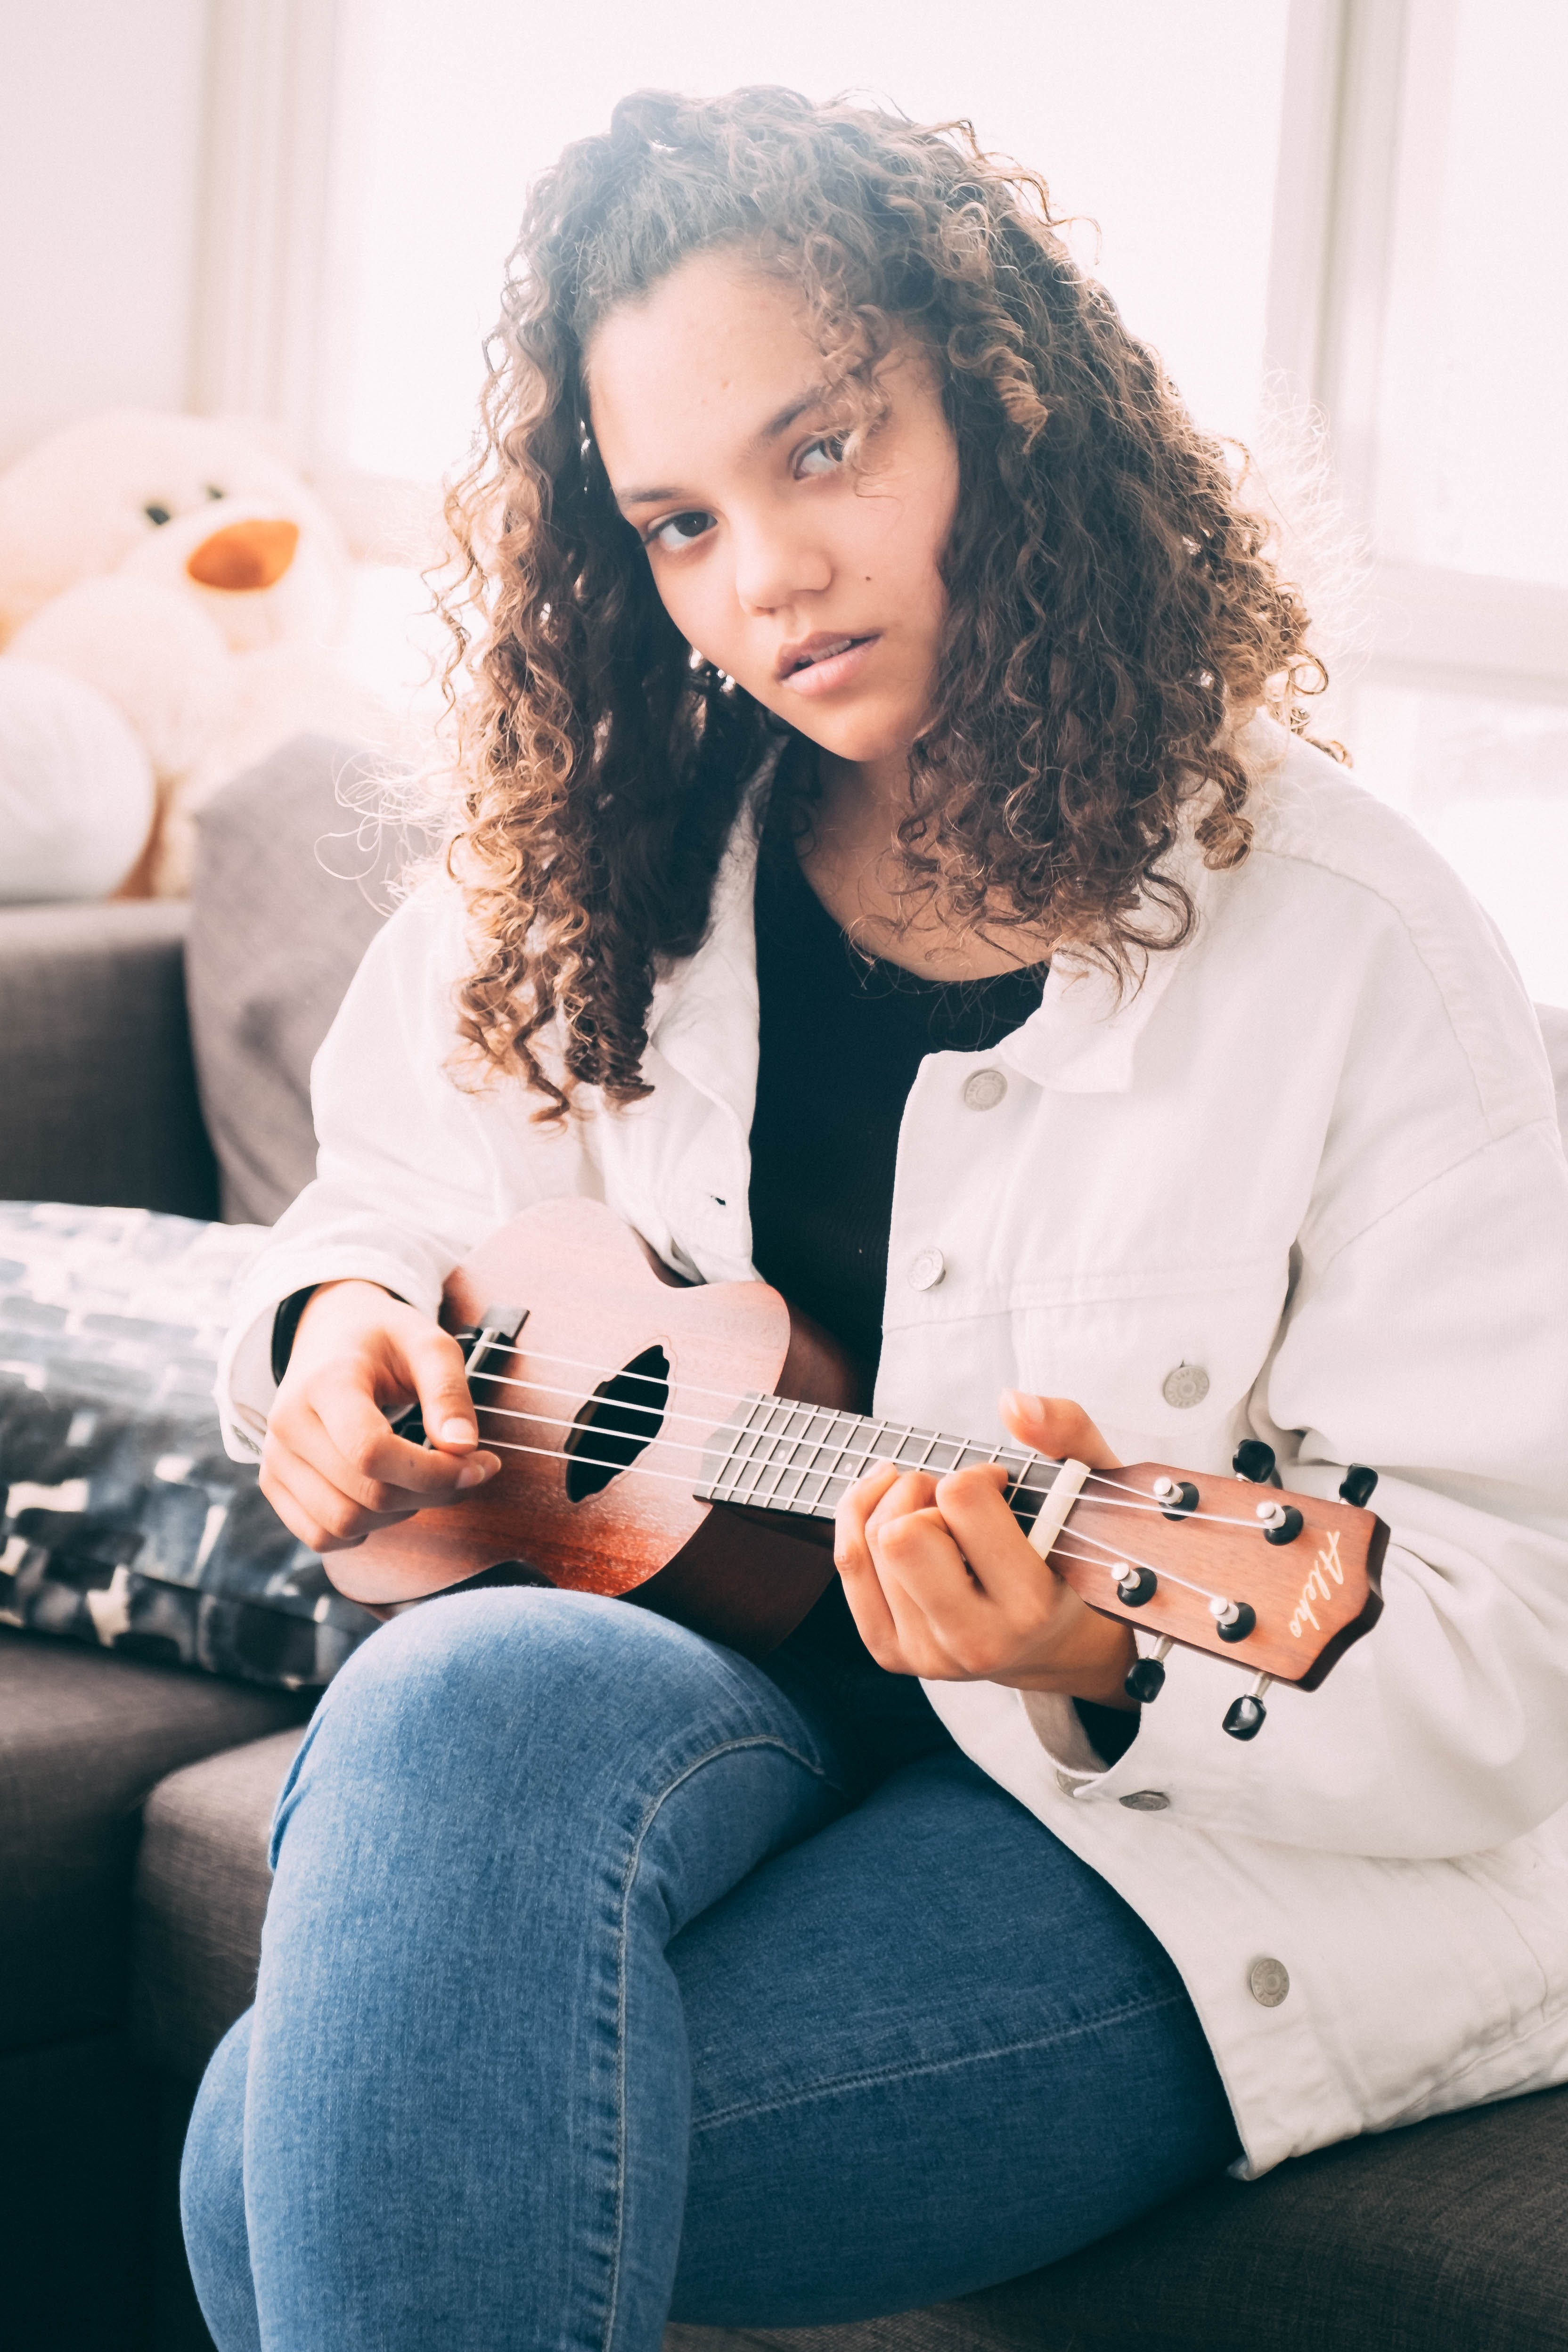 Free stock photo of curly, curly hair, girl, guitar strings